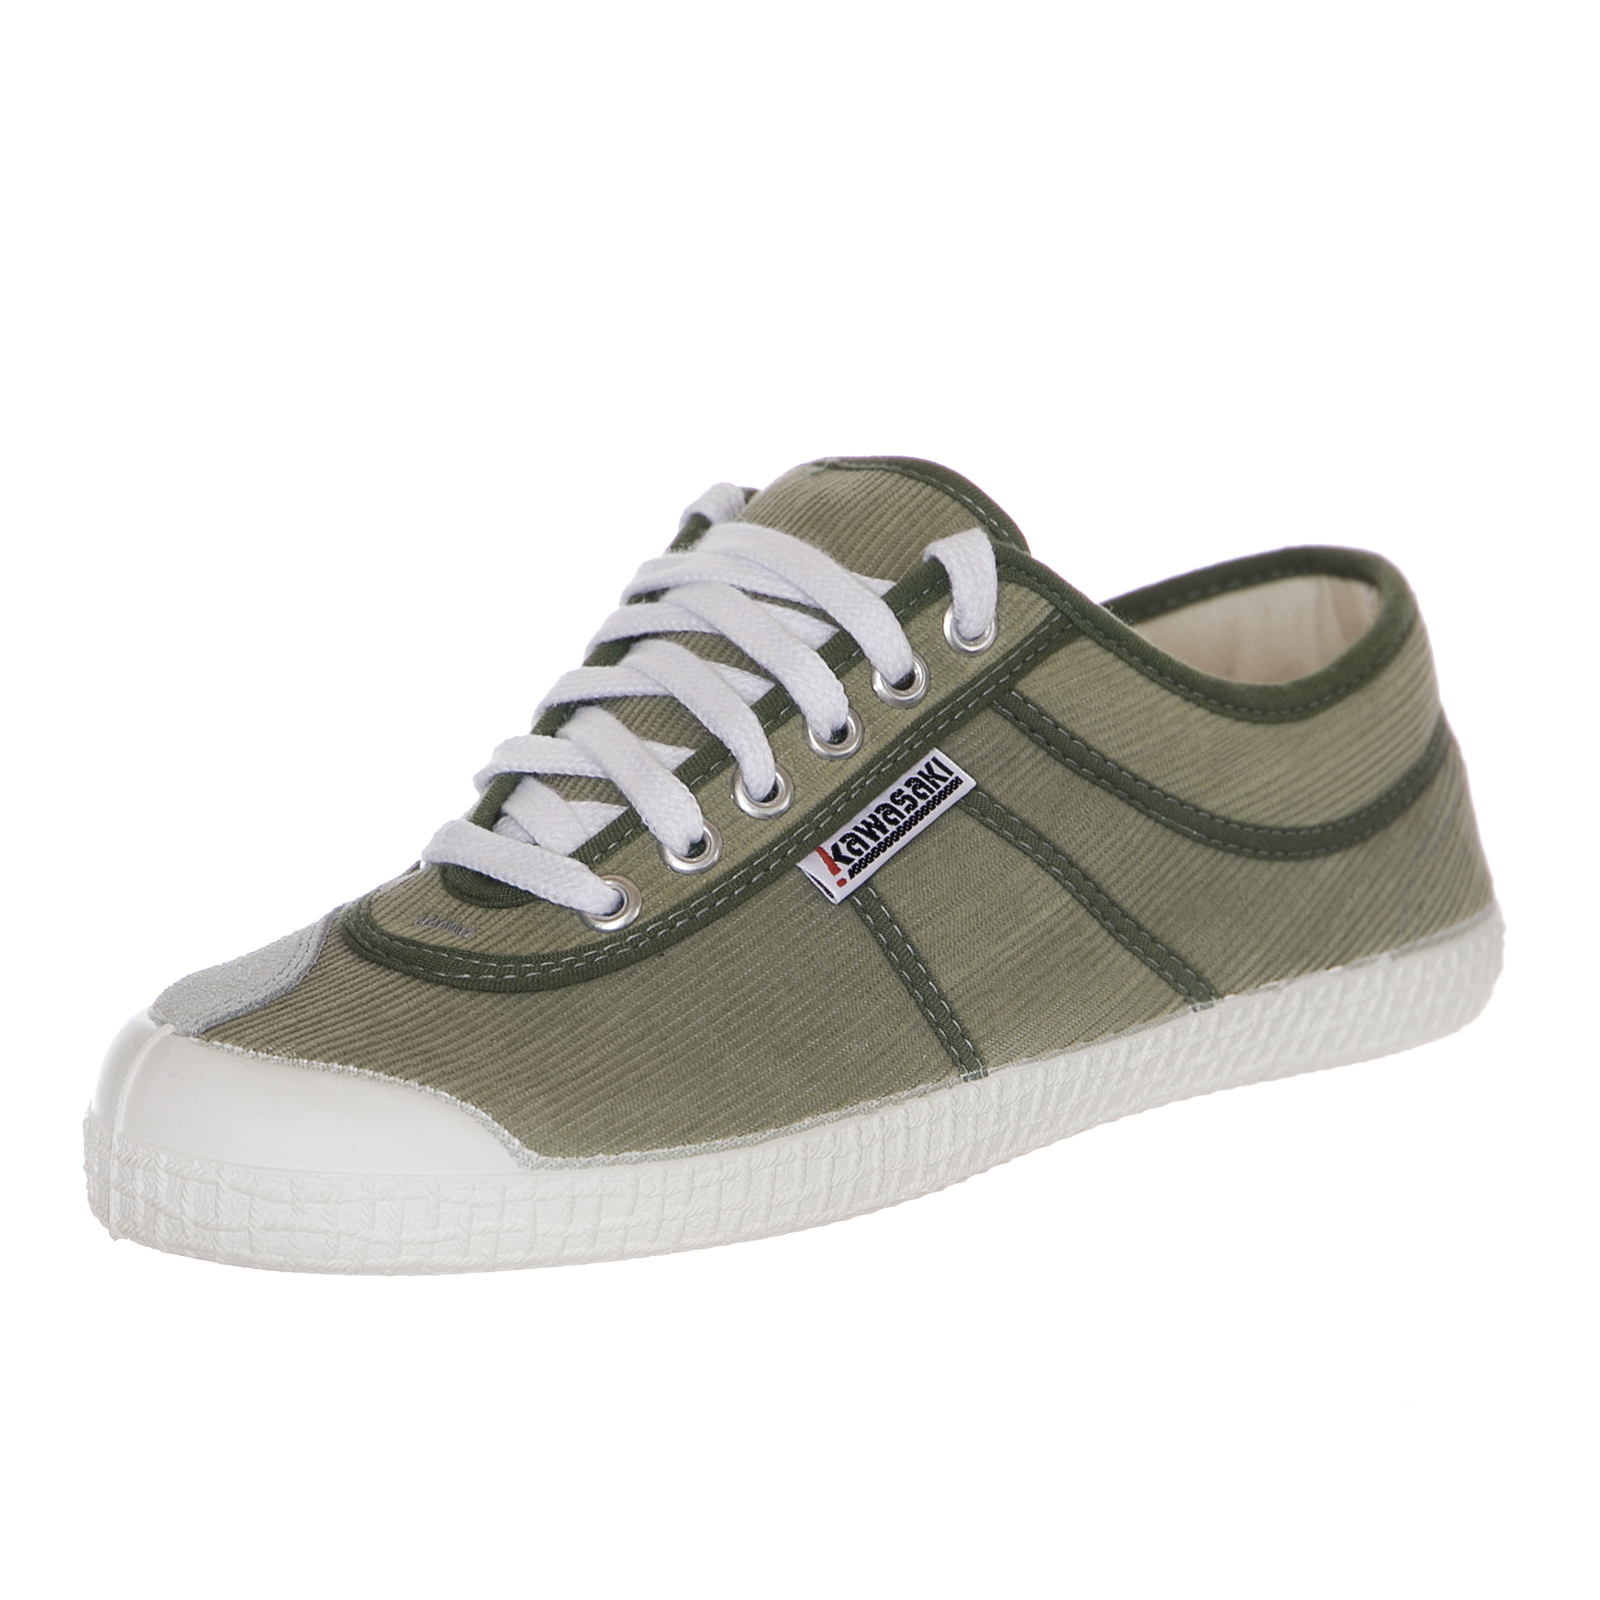 best website 72507 30400 Details about Kawasaki shoes Sneakers v11 Velvet Green White Green White  Sneakers- show original title